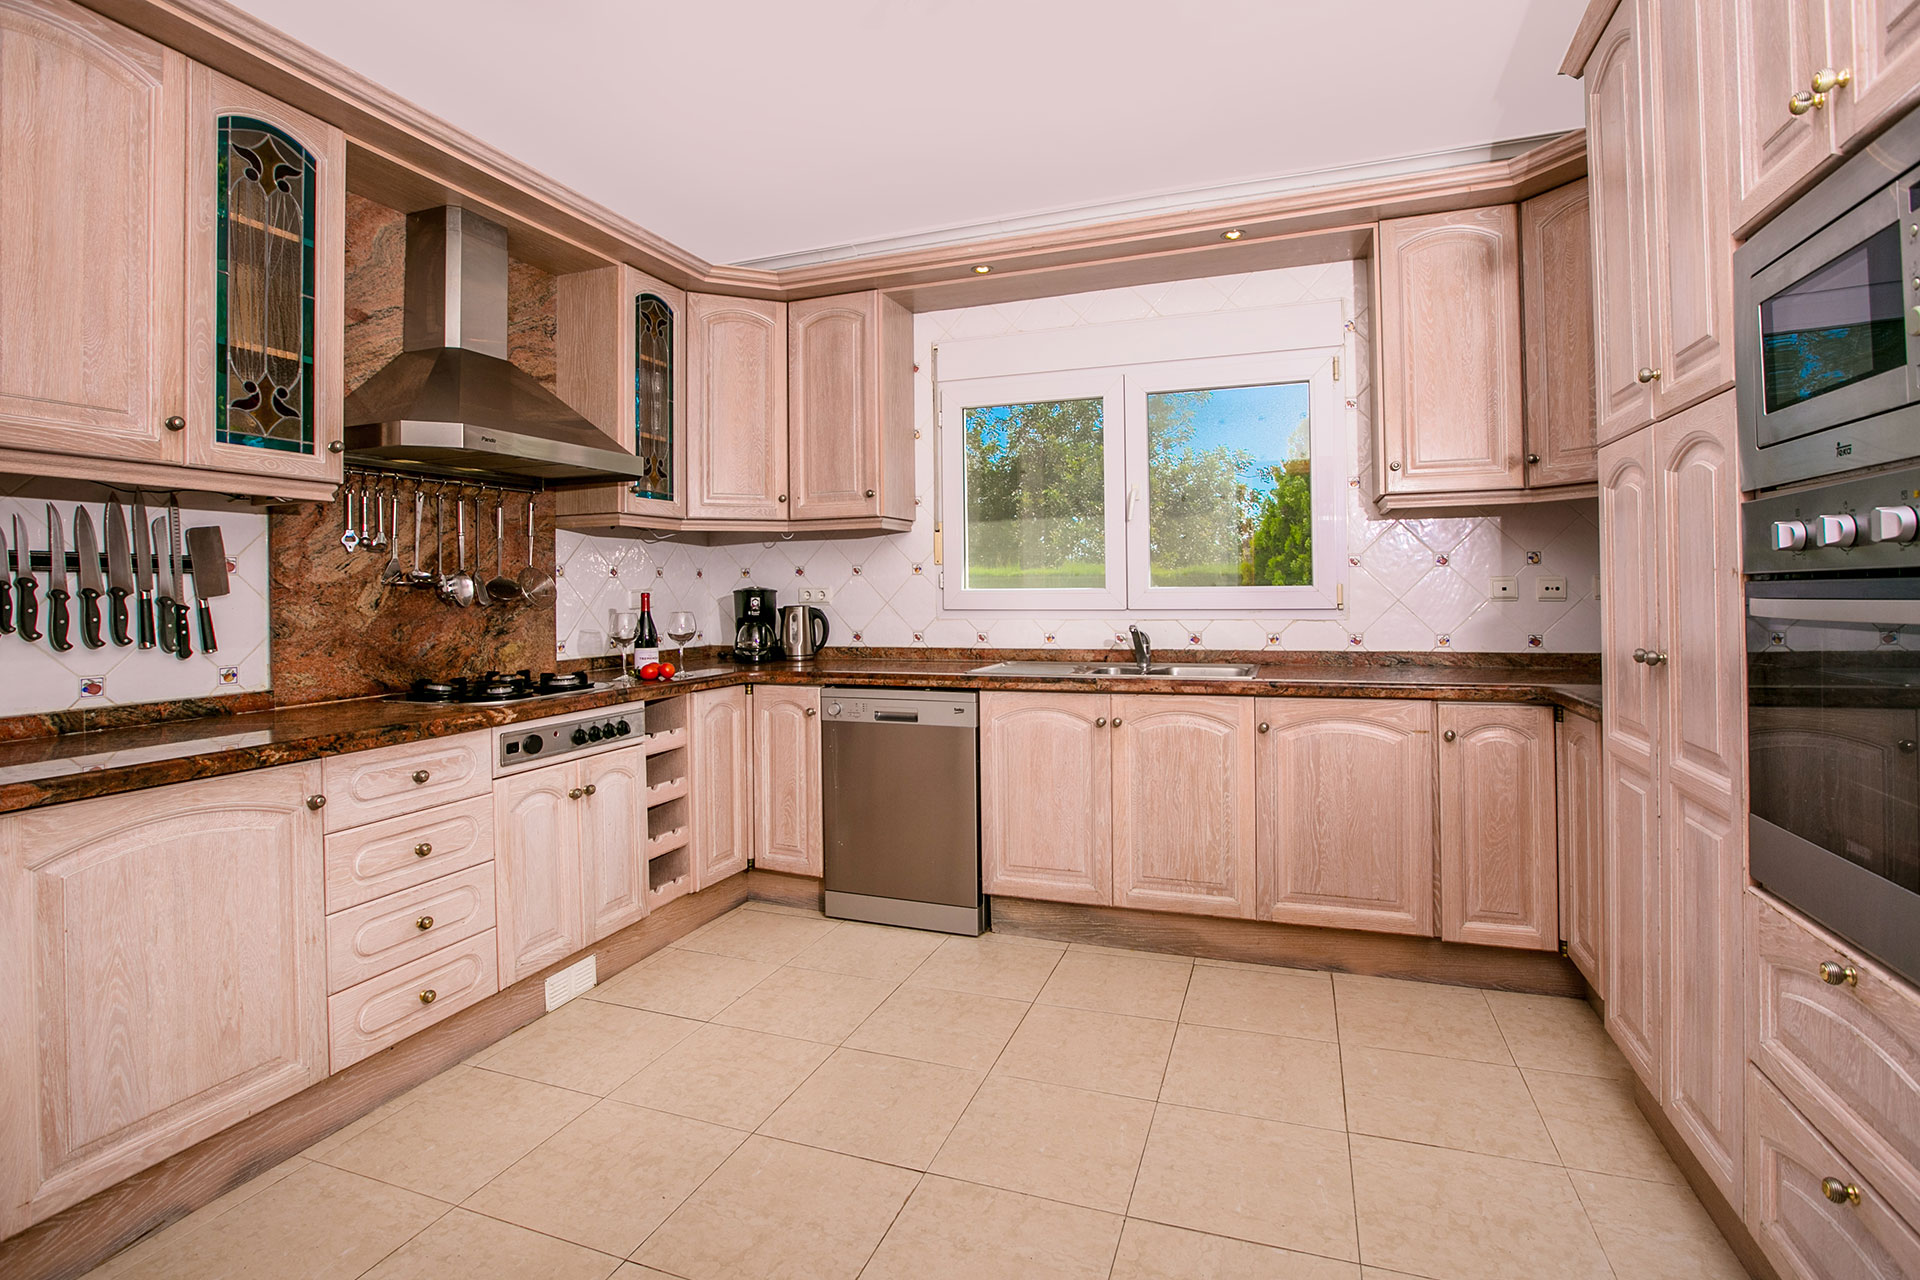 Javea rentals spacious well fitted kitchen.